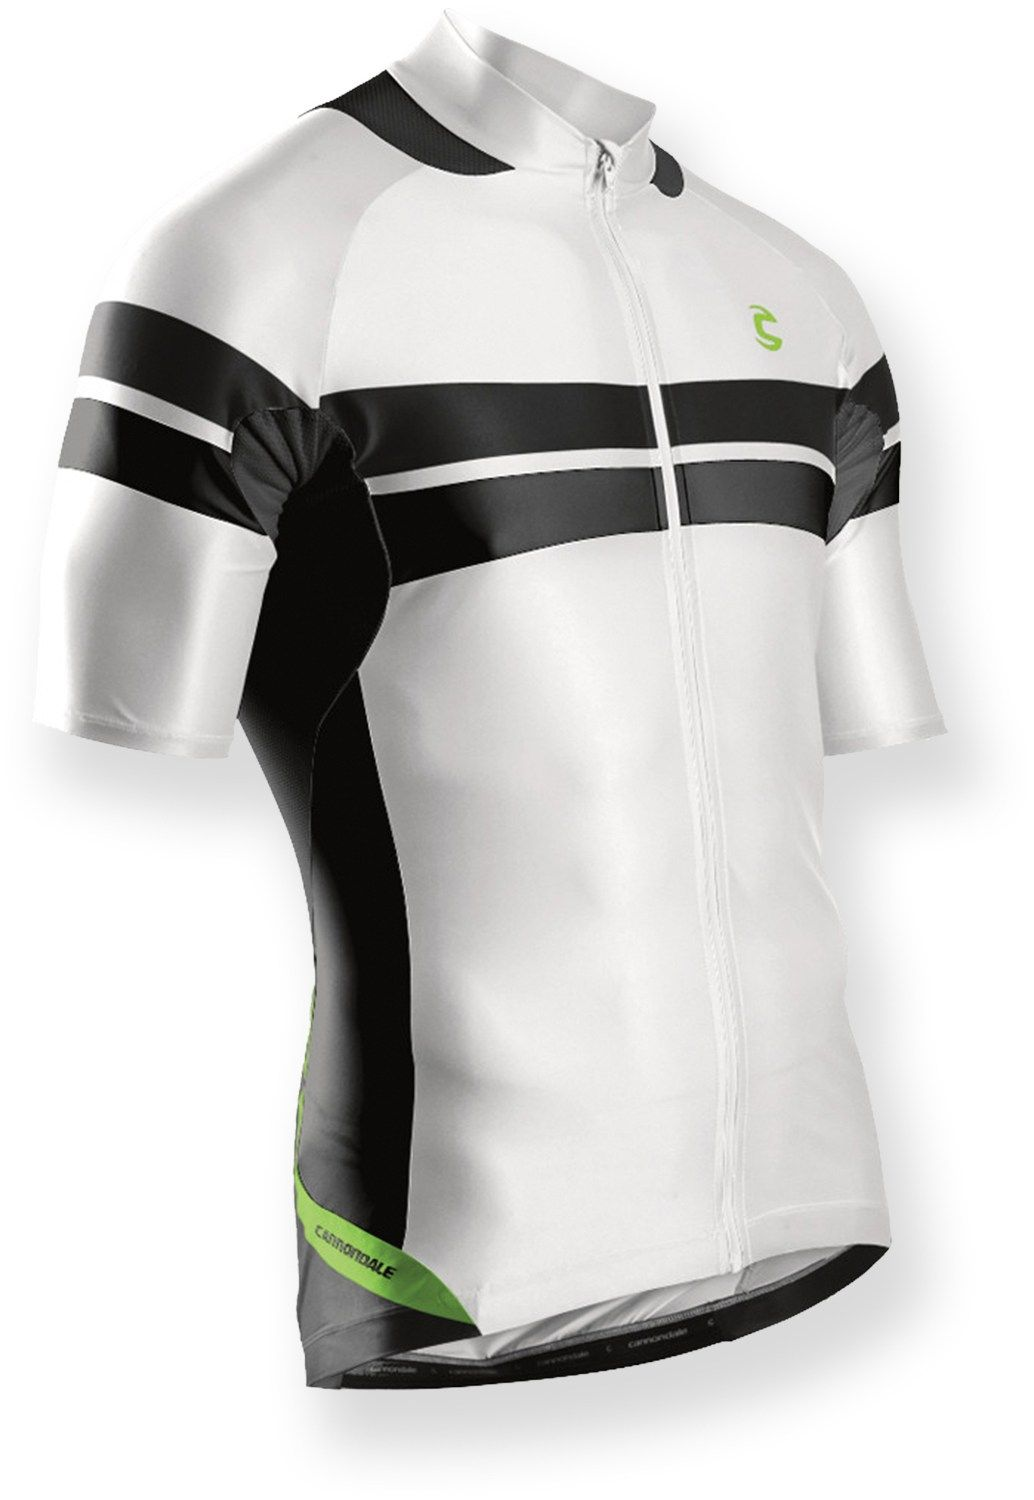 Cannondale L.E. Bike Jersey - Mens - 2012 Closeout - Free Shipping at  REI-OUTLET.com f0bbc110d